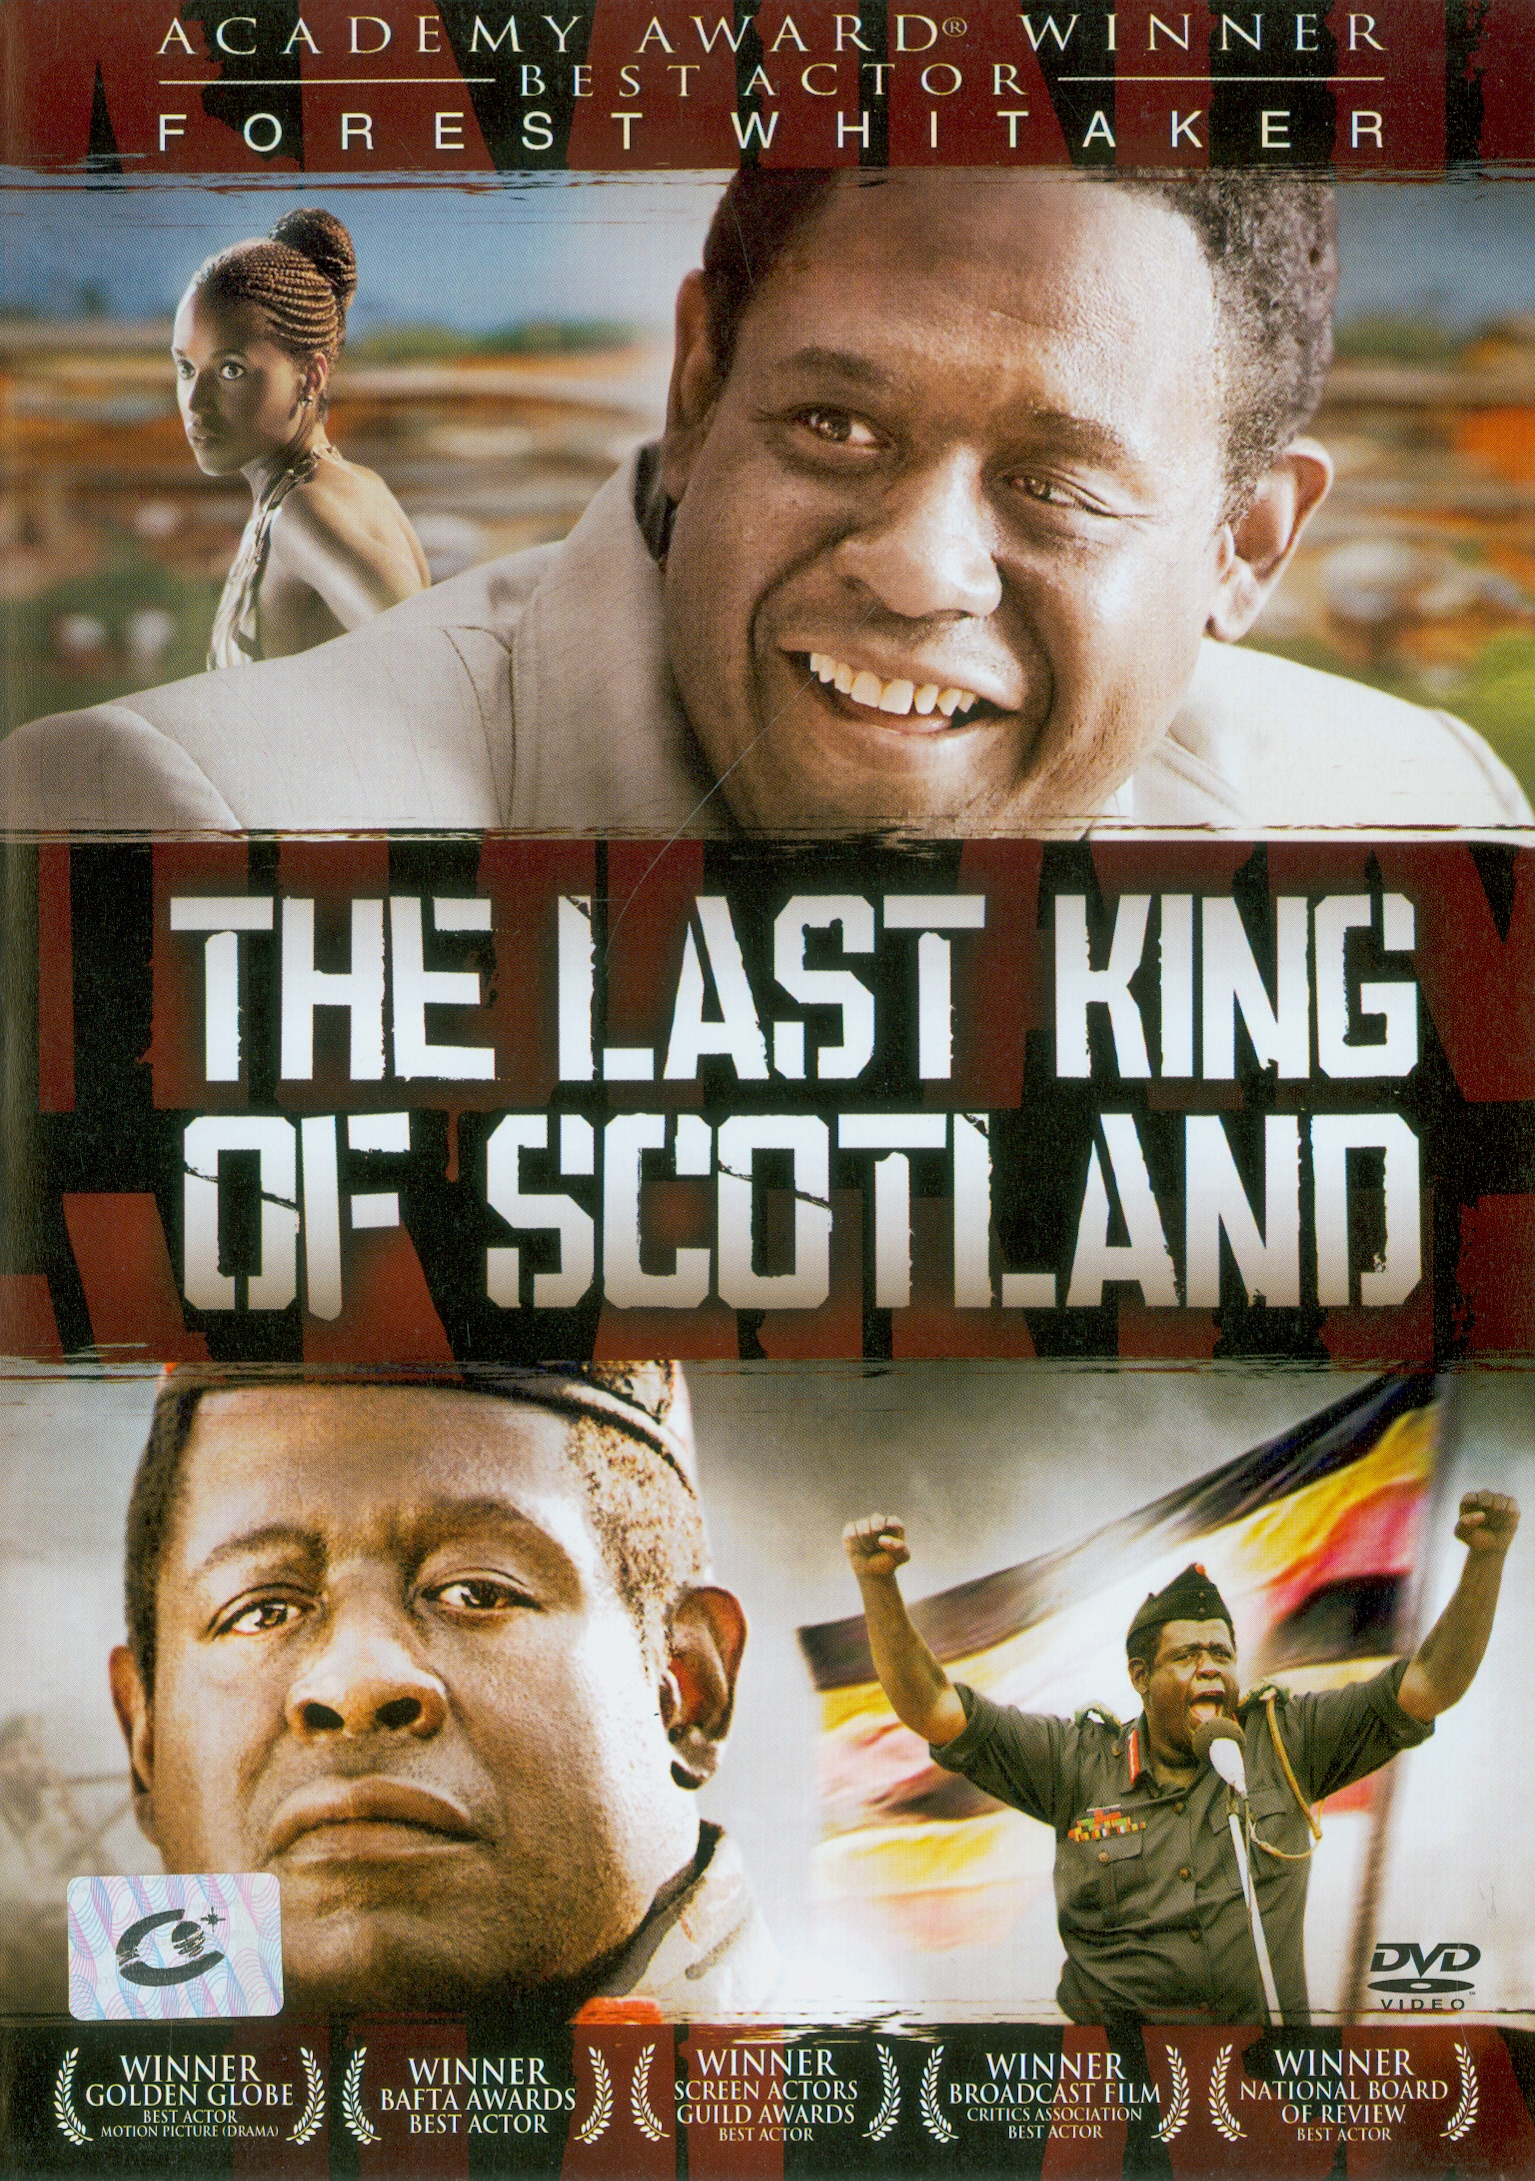 last king of Scotland[videorecording] /Fox Searchlight Pictures, DNA Films and Film Four present in association with the UK Film Council and Scottish Screen a Cowboy Films/Slate Films production ; produced by Lisa Bryer, Andrea Calderwood, Charles Steel ; screenplay by Peter Morgan and Jeremy Brock ; directed by Kevin Macdonald||เผด็จการแผ่นดินเลือด